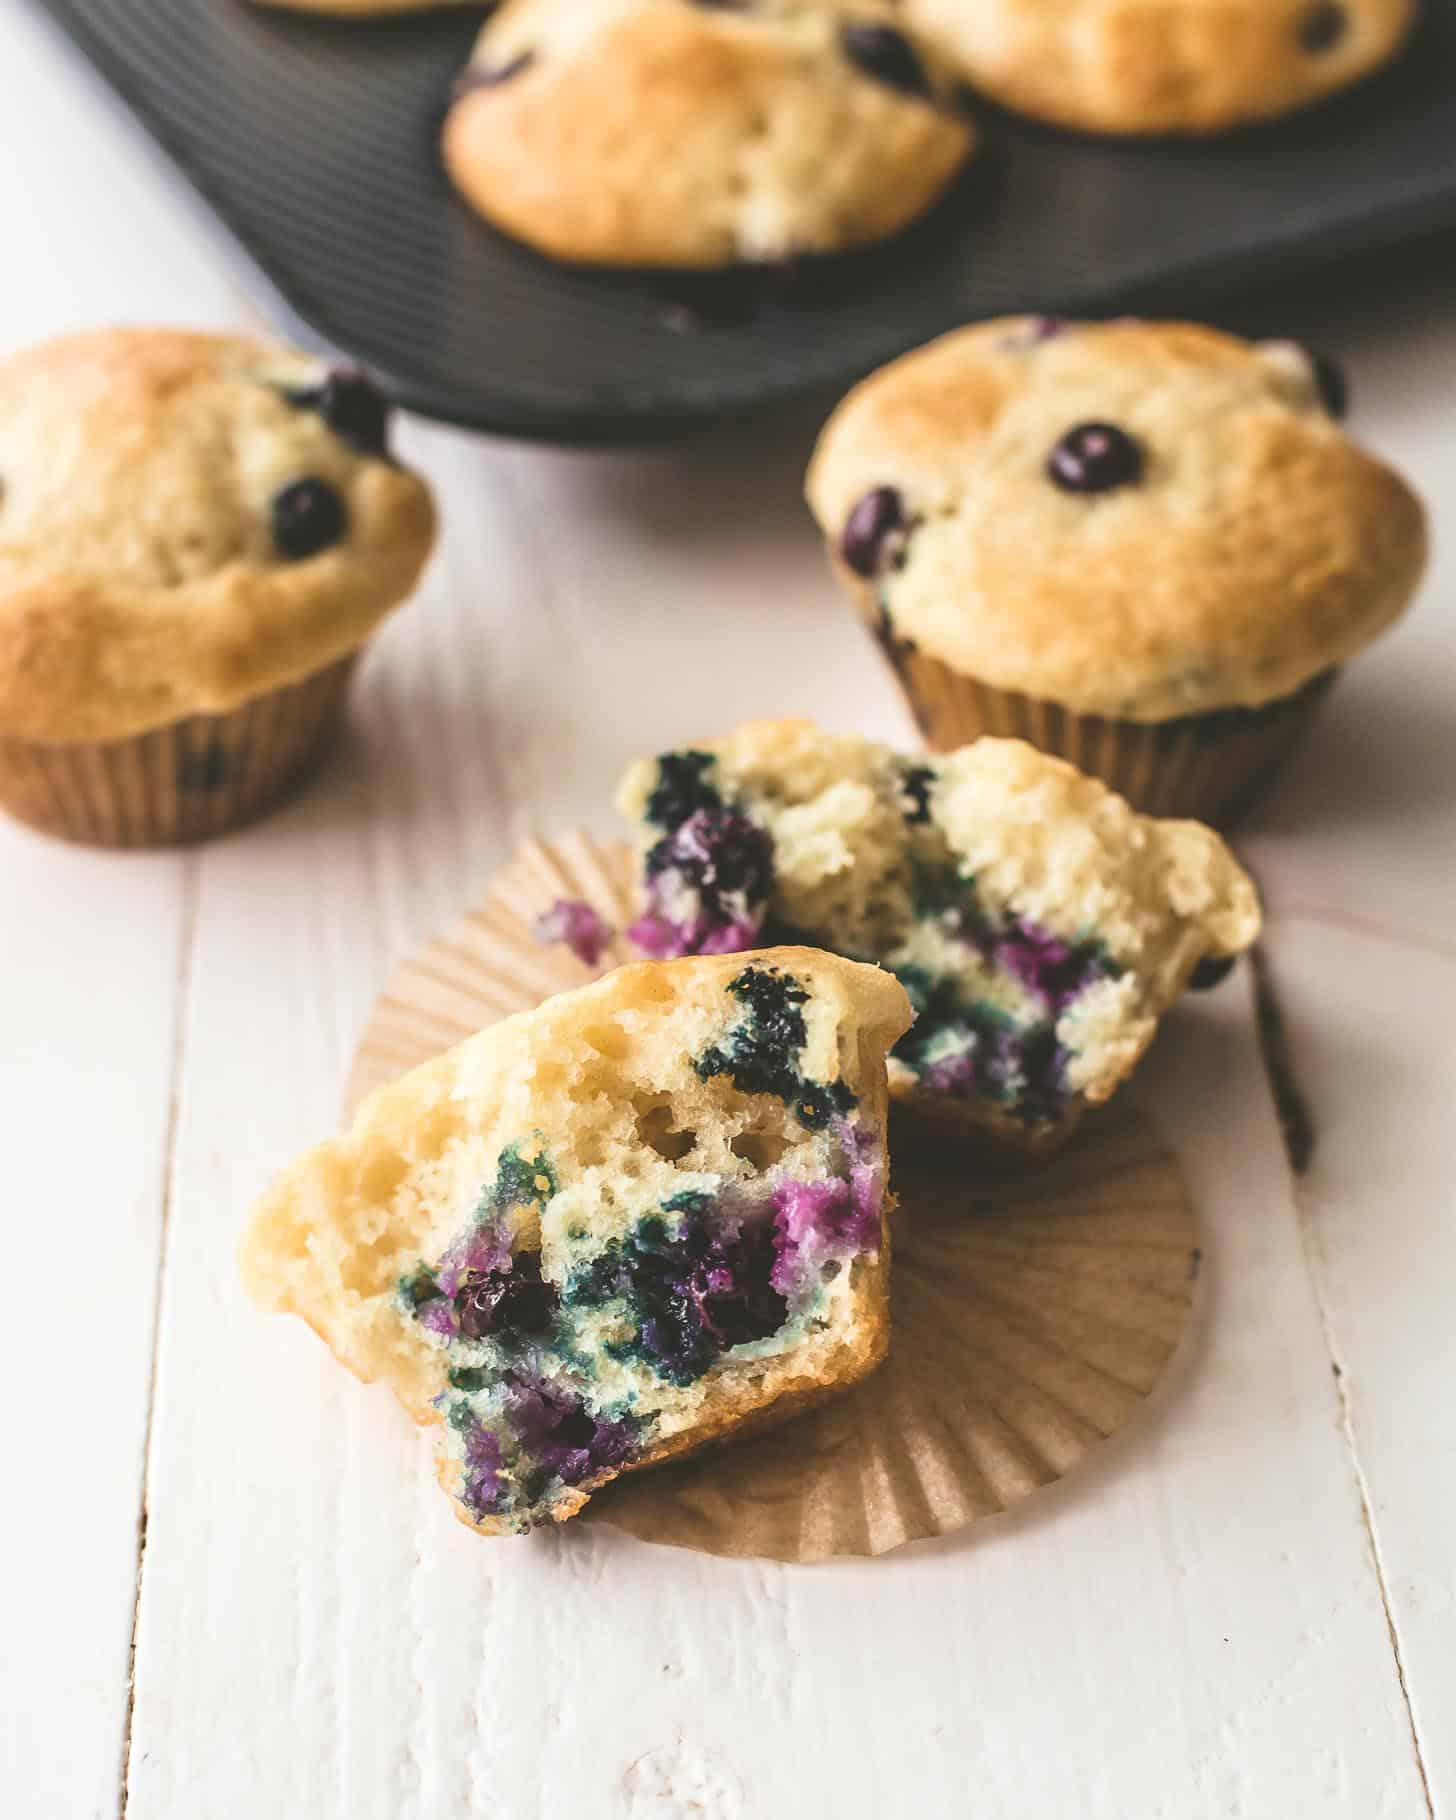 Blueberry Yogurt Muffins on a white table. One of the muffins is broken in half.